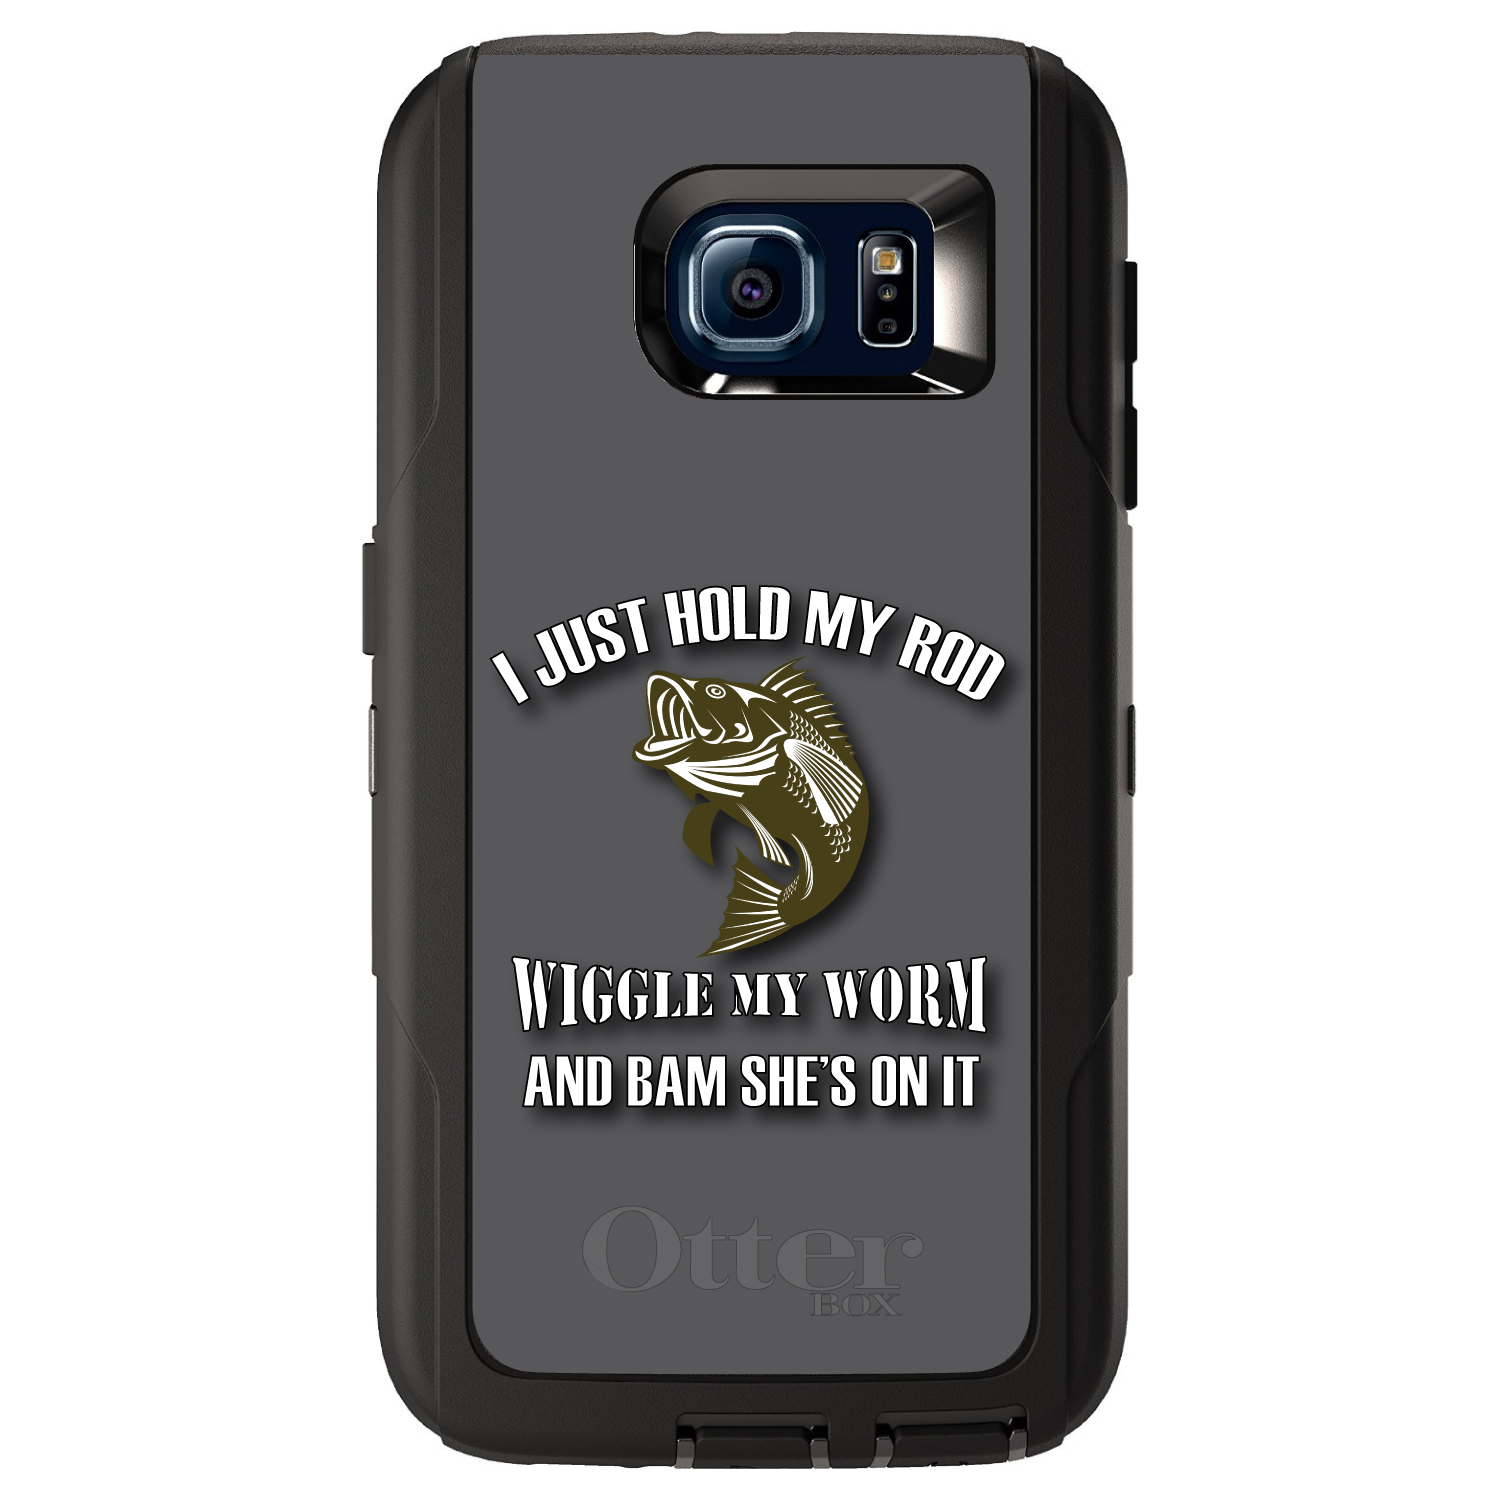 CUSTOM Black OtterBox Defender Series Case for Samsung Galaxy S6 - Fishing - Wiggle My Worm